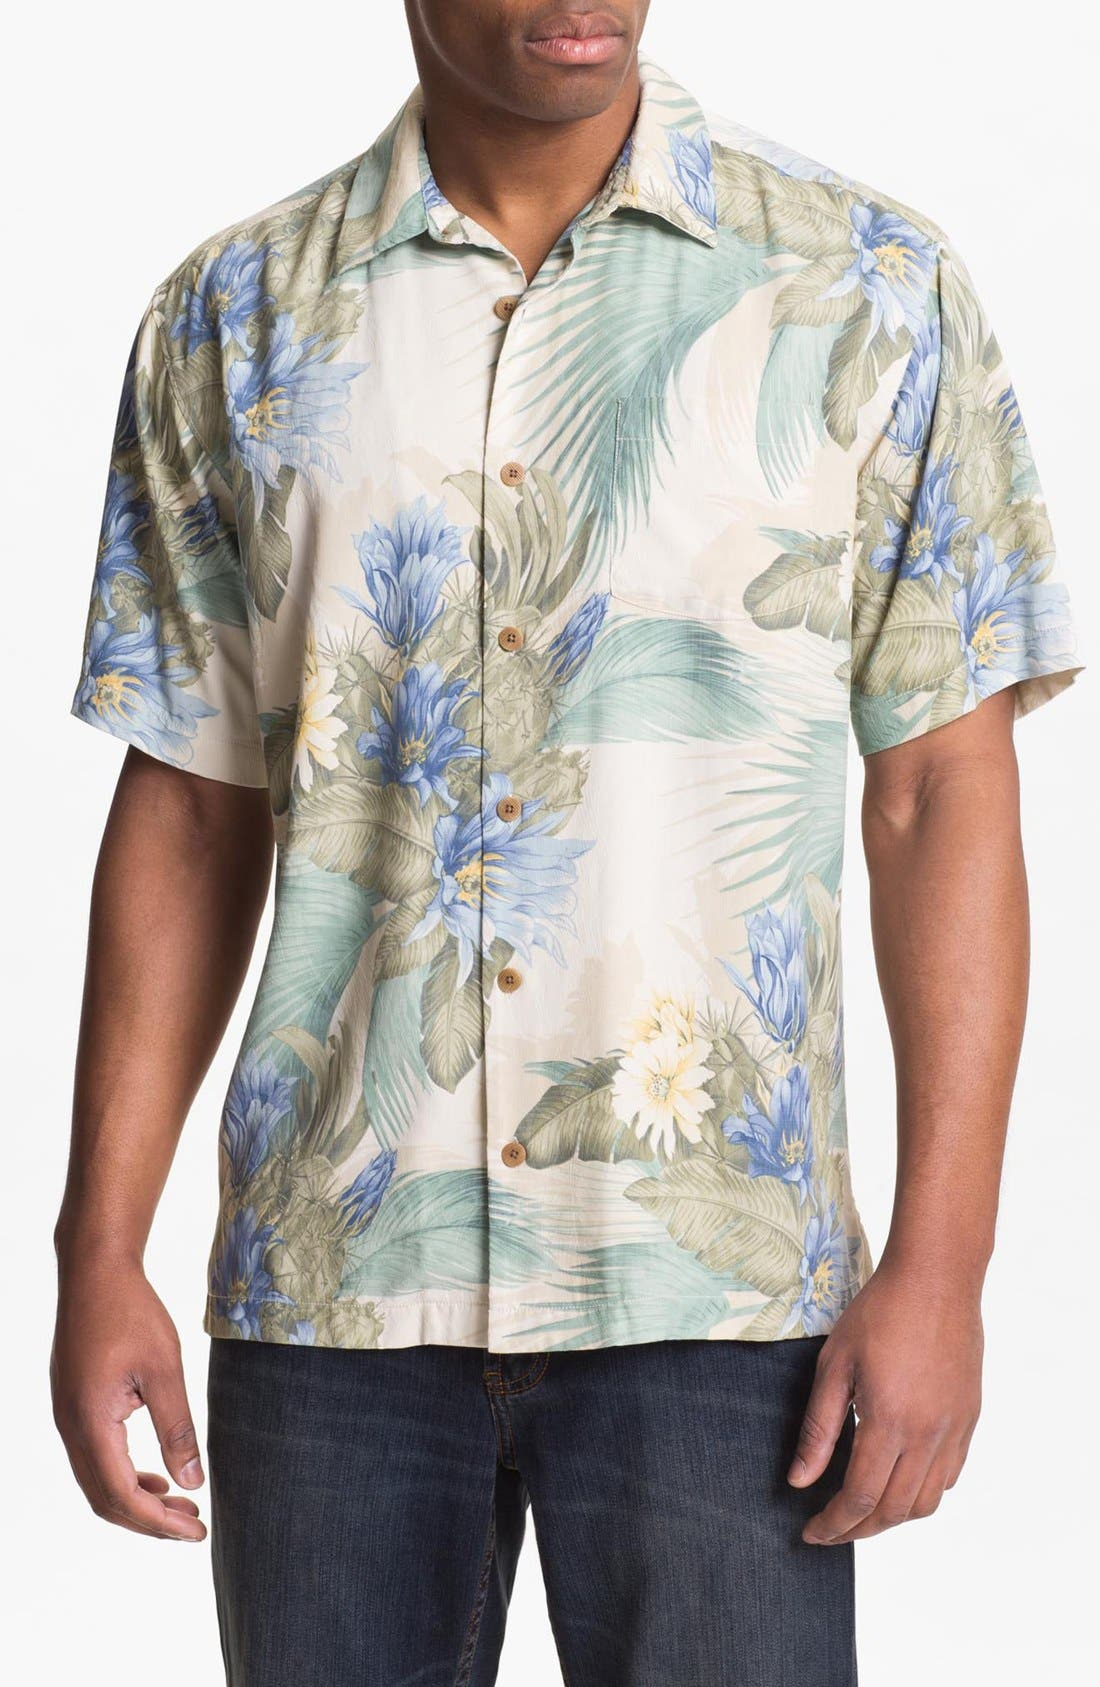 Main Image - Tommy Bahama 'Garden of Hope & Courage' Silk Campshirt (Big & Tall)